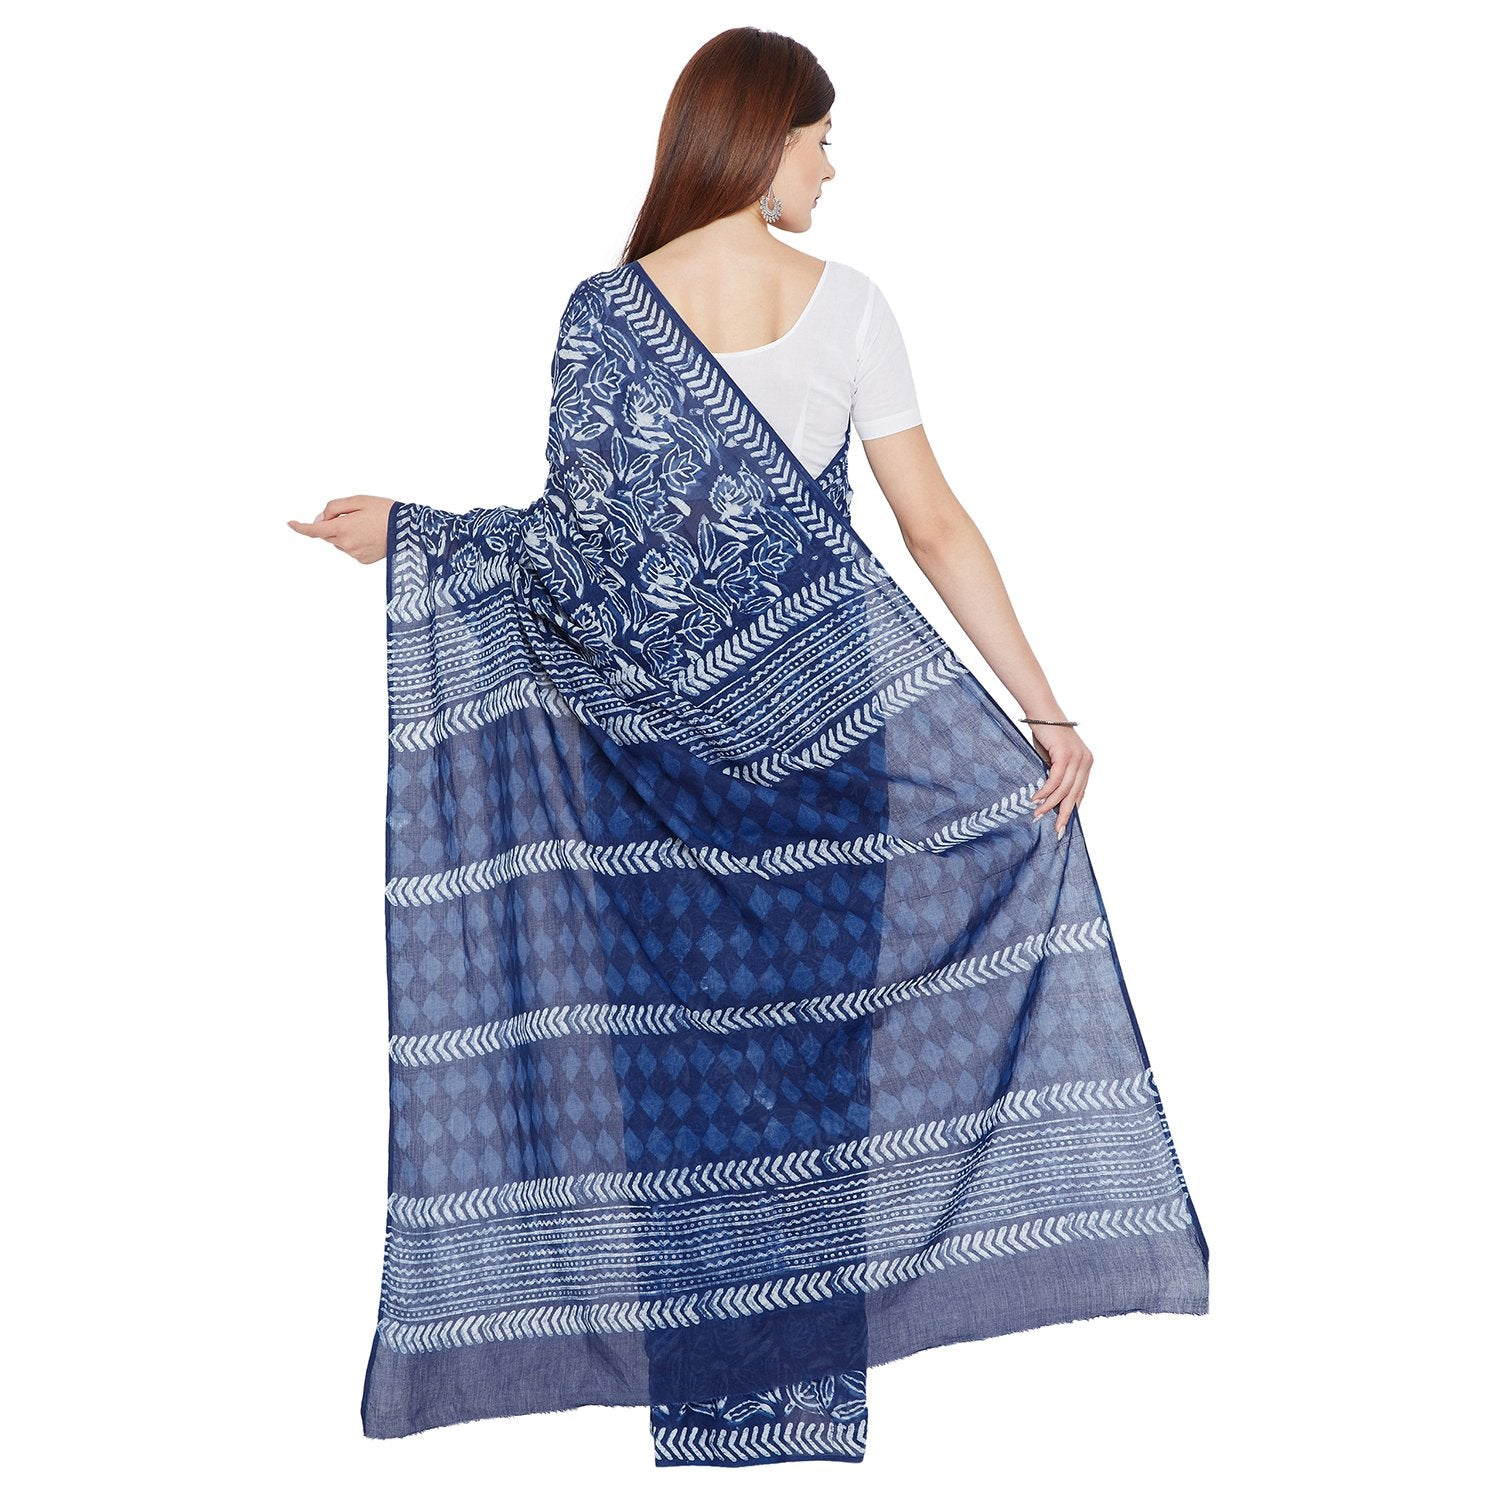 Blue & White Indigo Hand Block Print Handcrafted Cotton Saree-Saree-Kalakari India-BAPASA0078-Cotton, Dabu, Geographical Indication, Hand Blocks, Hand Crafted, Heritage Prints, Indigo, Natural Dyes, Sarees, Sustainable Fabrics-[Linen,Ethnic,wear,Fashionista,Handloom,Handicraft,Indigo,blockprint,block,print,Cotton,Chanderi,Blue, latest,classy,party,bollywood,trendy,summer,style,traditional,formal,elegant,unique,style,hand,block,print, dabu,booti,gift,present,glamorous,affordable,collectible,Sari,